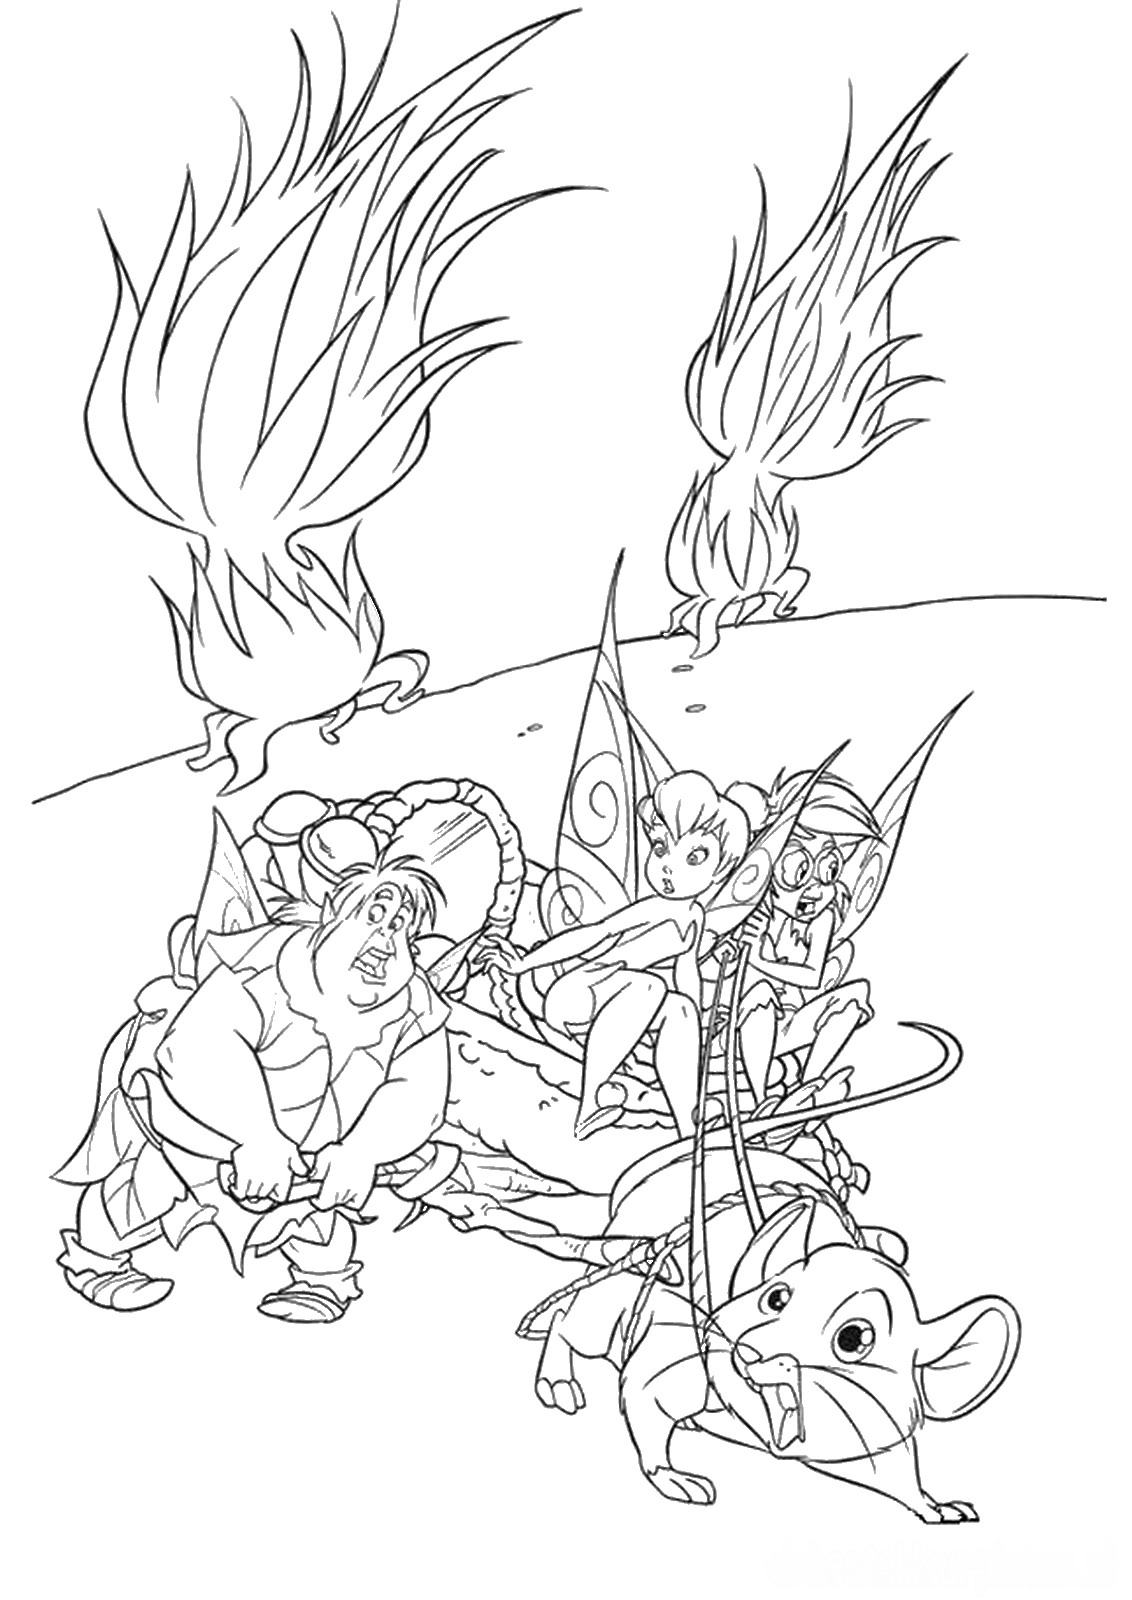 tinkerbell coloring sheets tinkerbell coloring pages sheets coloring tinkerbell